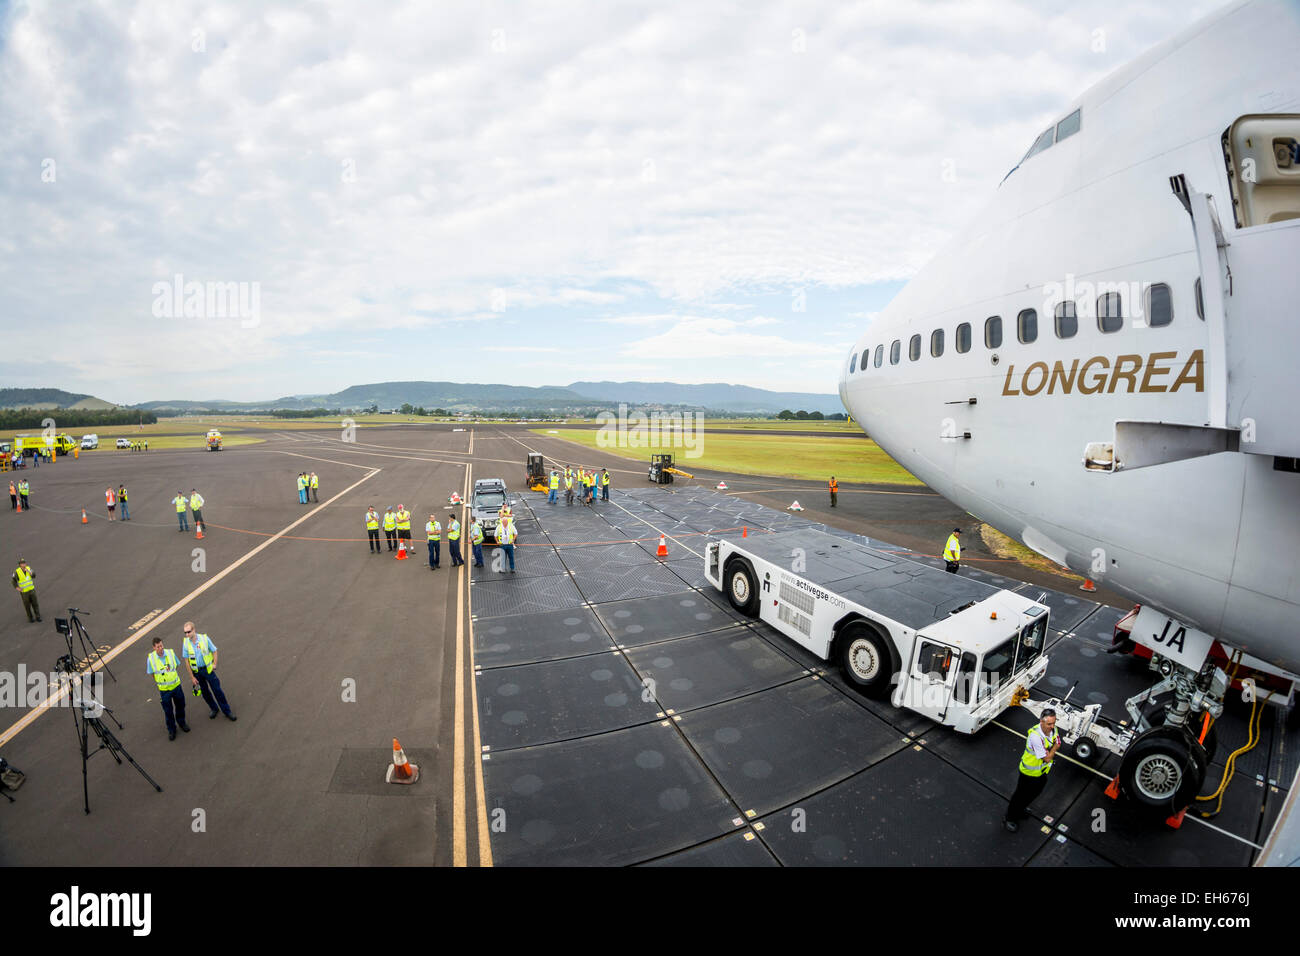 Sydney, Australia. 8th March, 2015. Qantas retired its first Boeing 747-400, VH-OJA, which flew a record non-stop - Stock Image